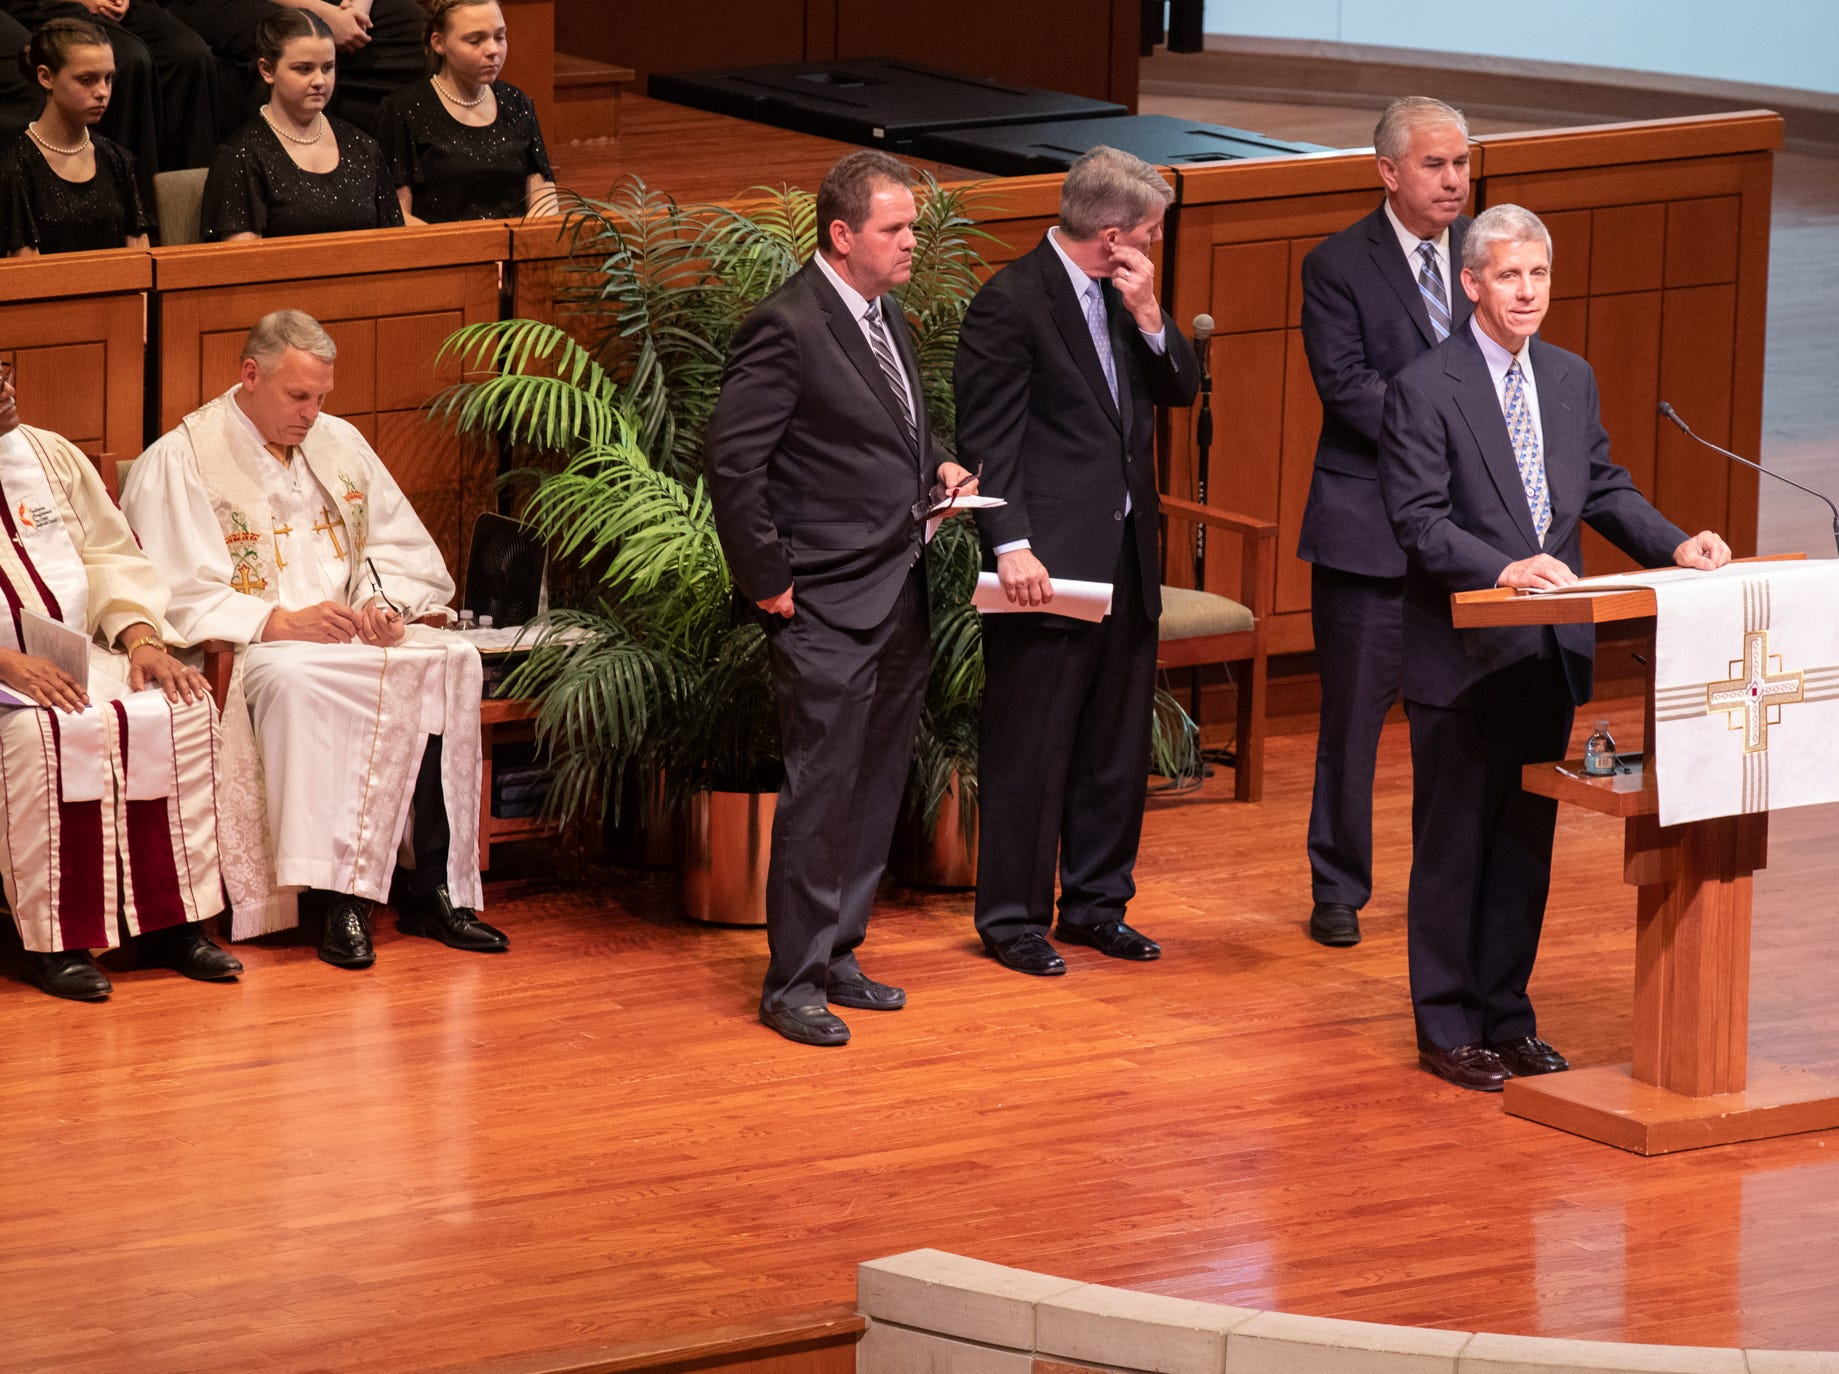 Richard Lugar's sons — John (rear, from left), David and Bob — watch as their brother Mark pays tribute to their father during a memorial service at Saint Luke's United Methodist Church in Indianapolis, on Wednesday, May 15, 2019. Lugar served as mayor of Indianapolis from 1968 to 1975 and U.S. senator from 1977 to 2013. He died April 28, 2019, at the age of 87.